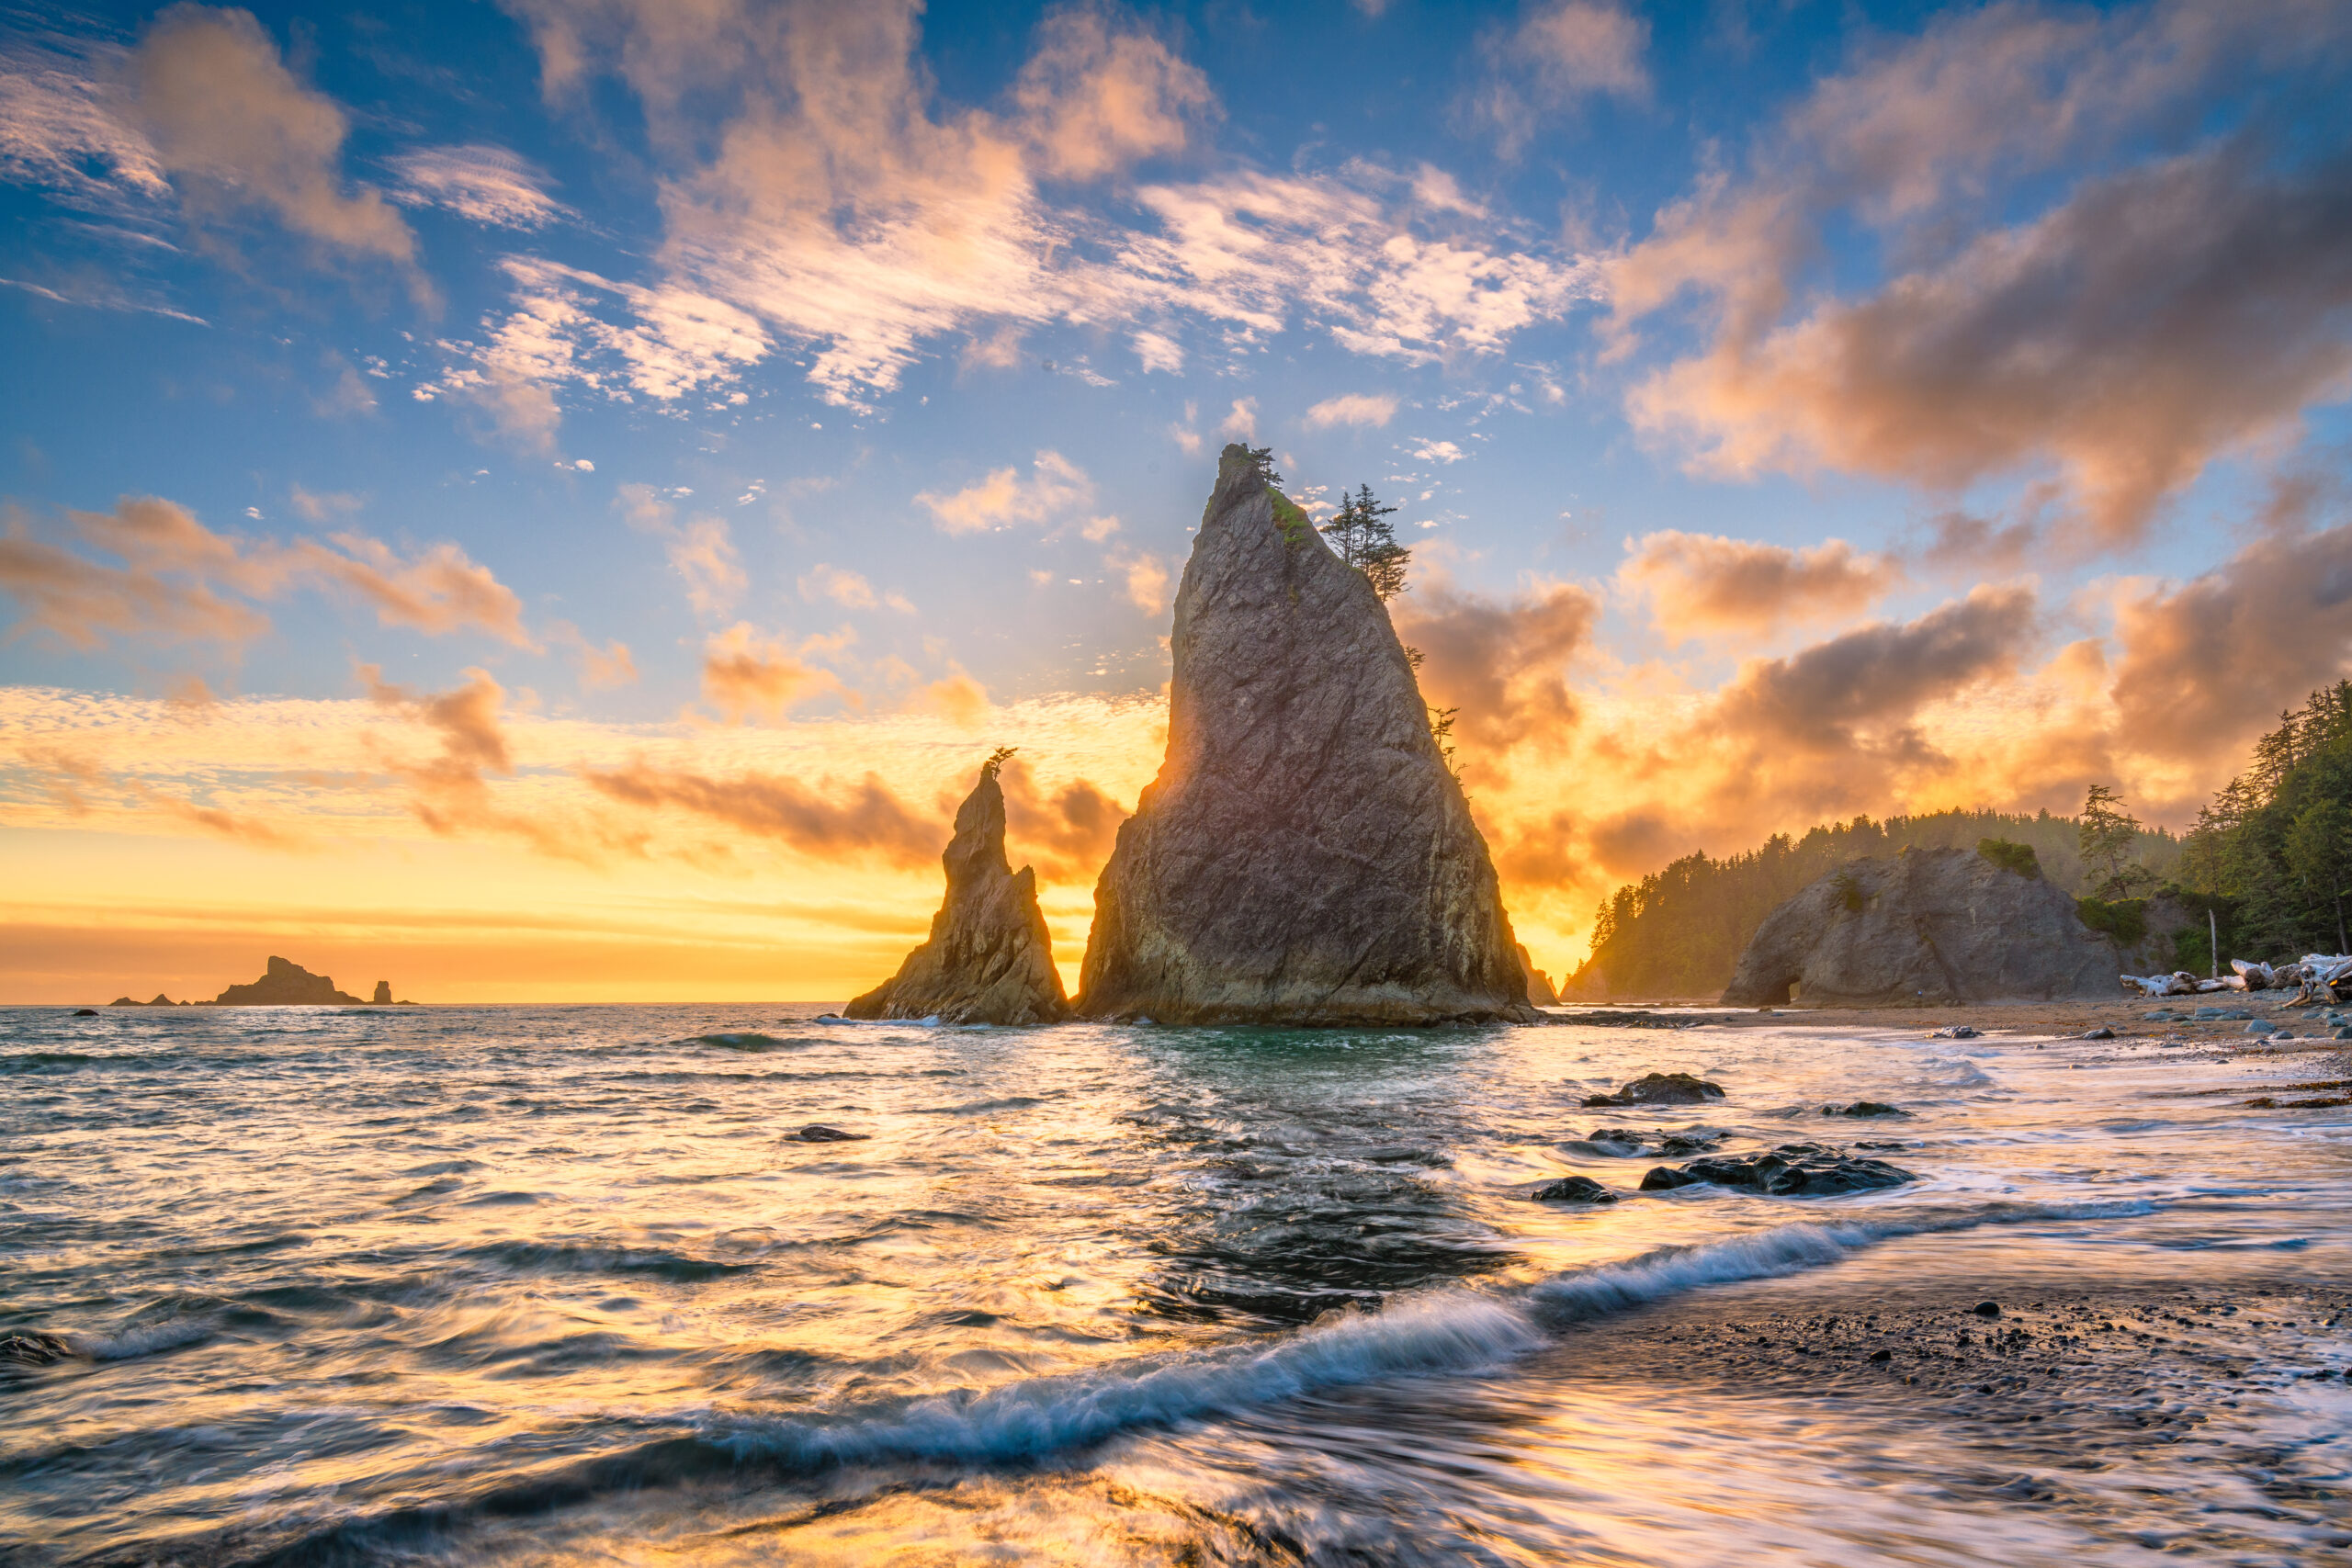 sunset over rialto beach with a haystack in the center, one of the best washington beaches